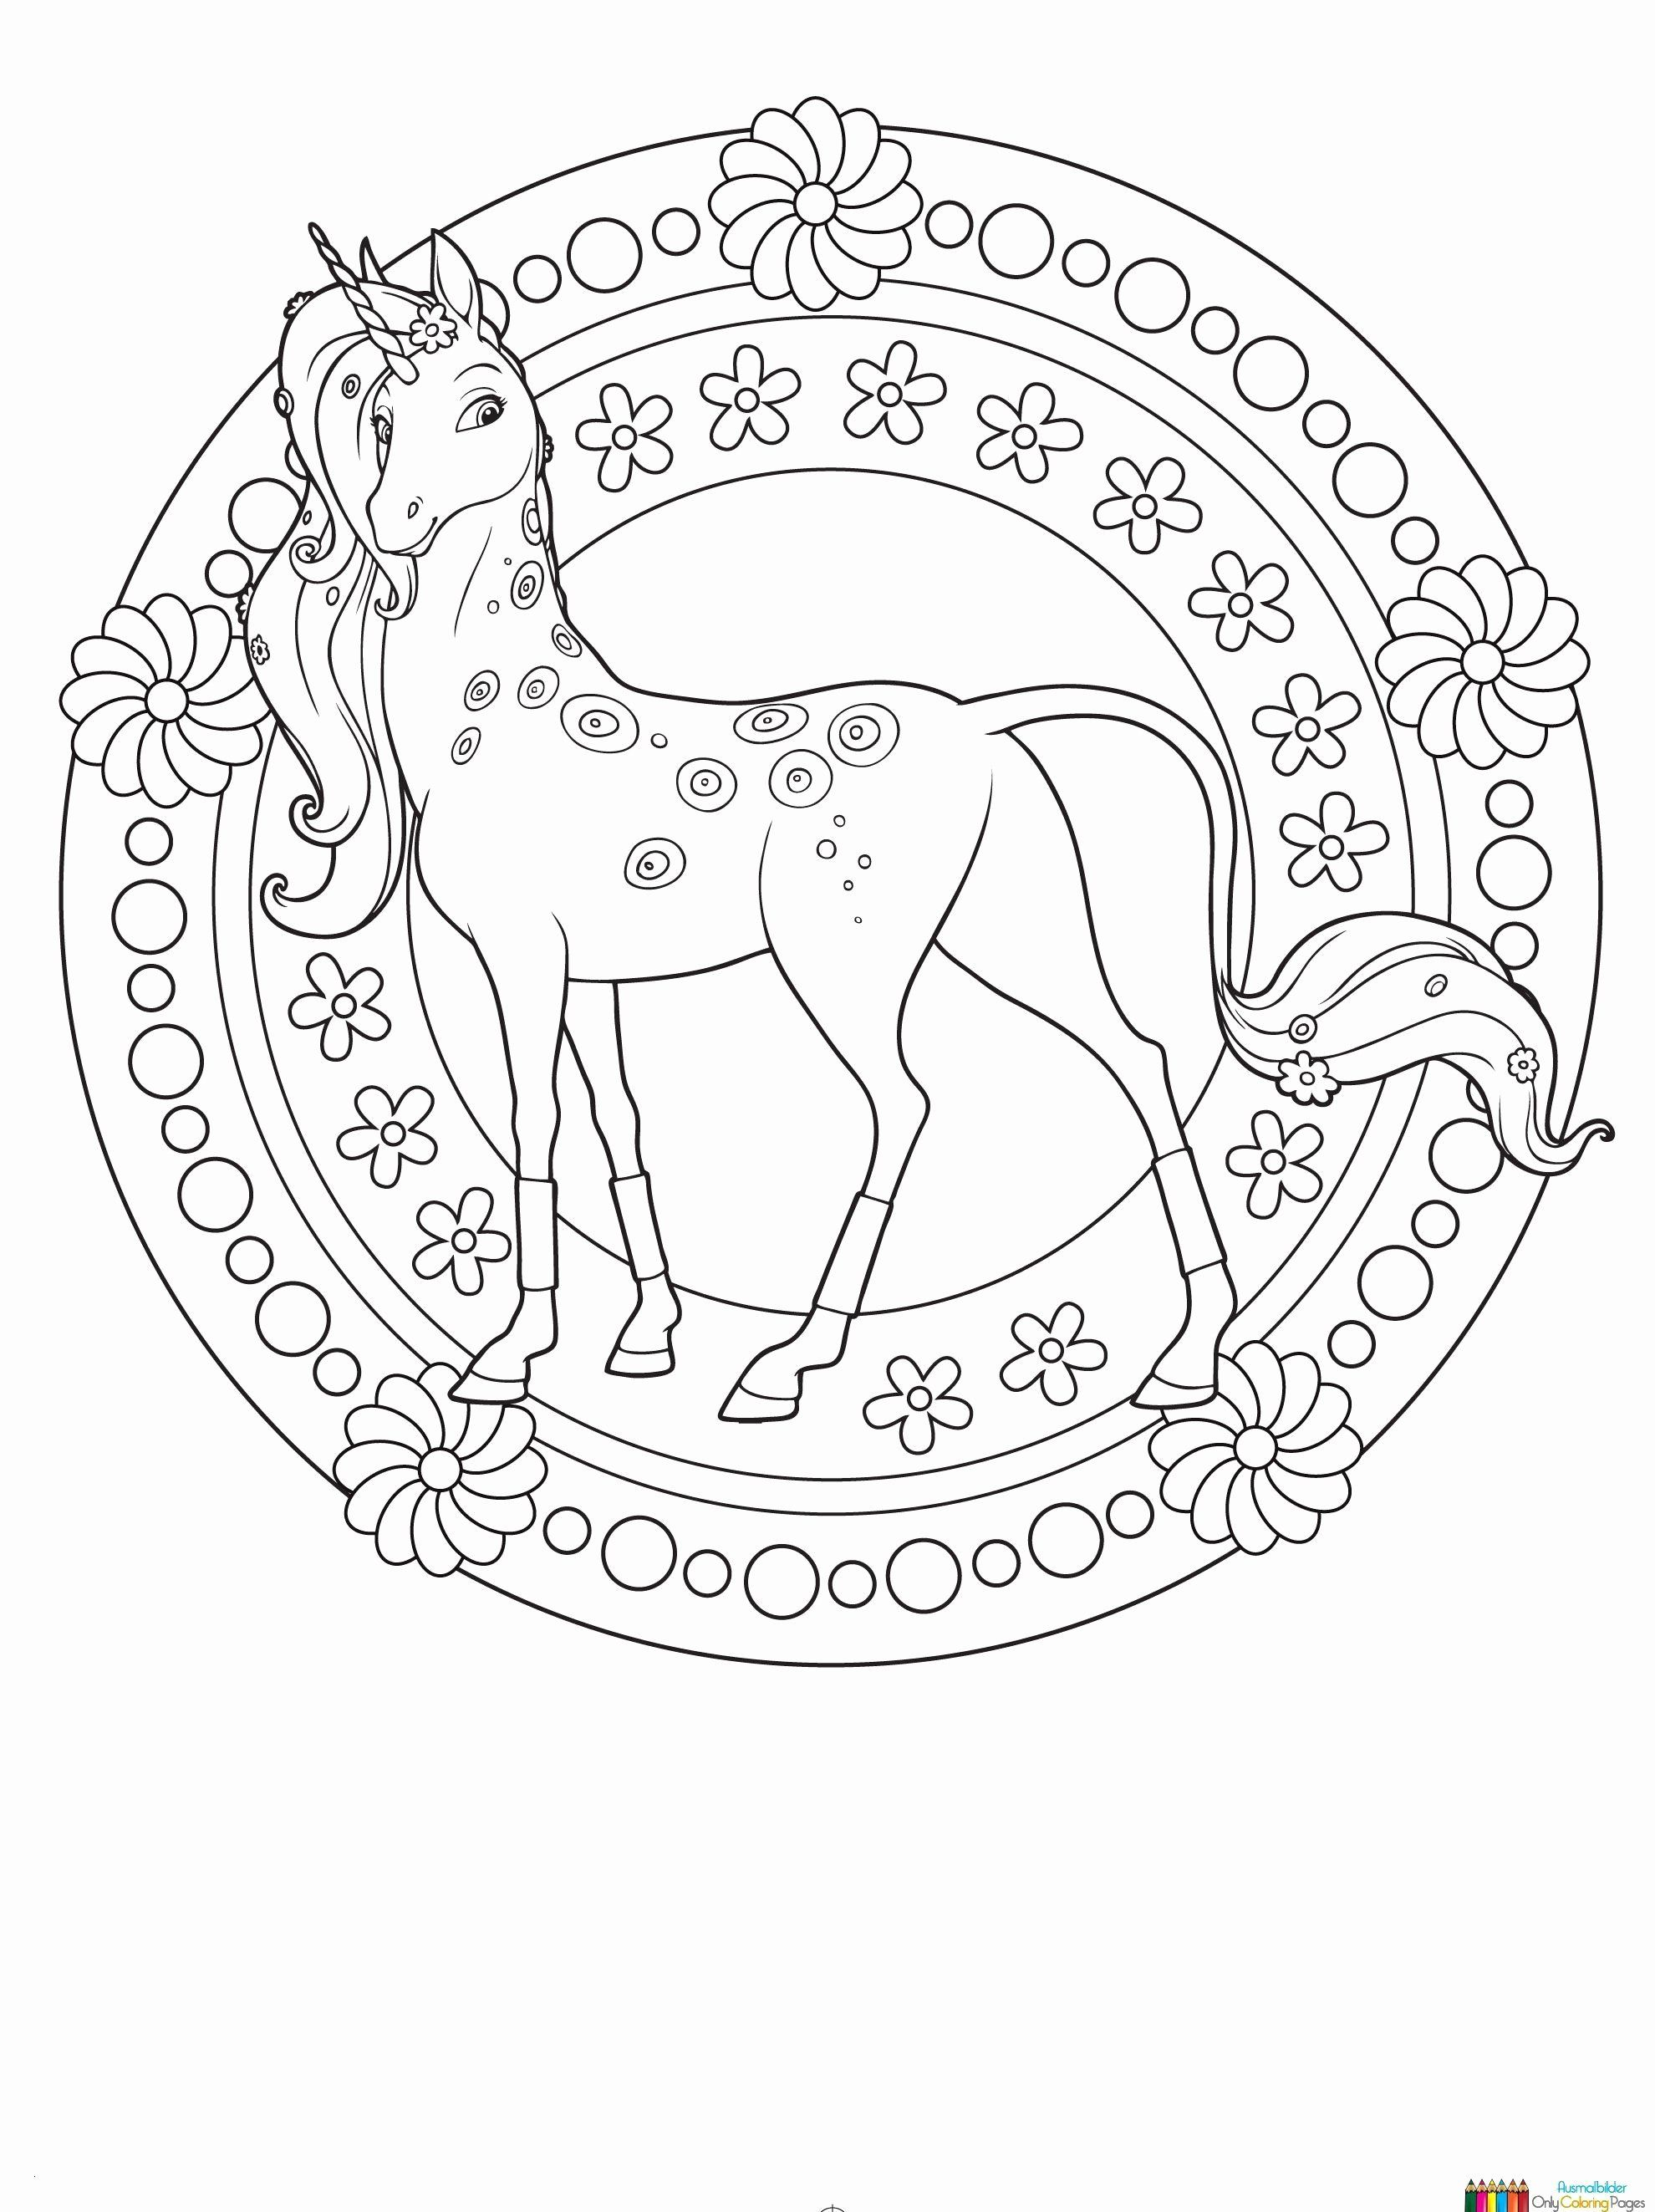 Transportation Coloring Pages Pdf Awesome 95 Convert To Coloring